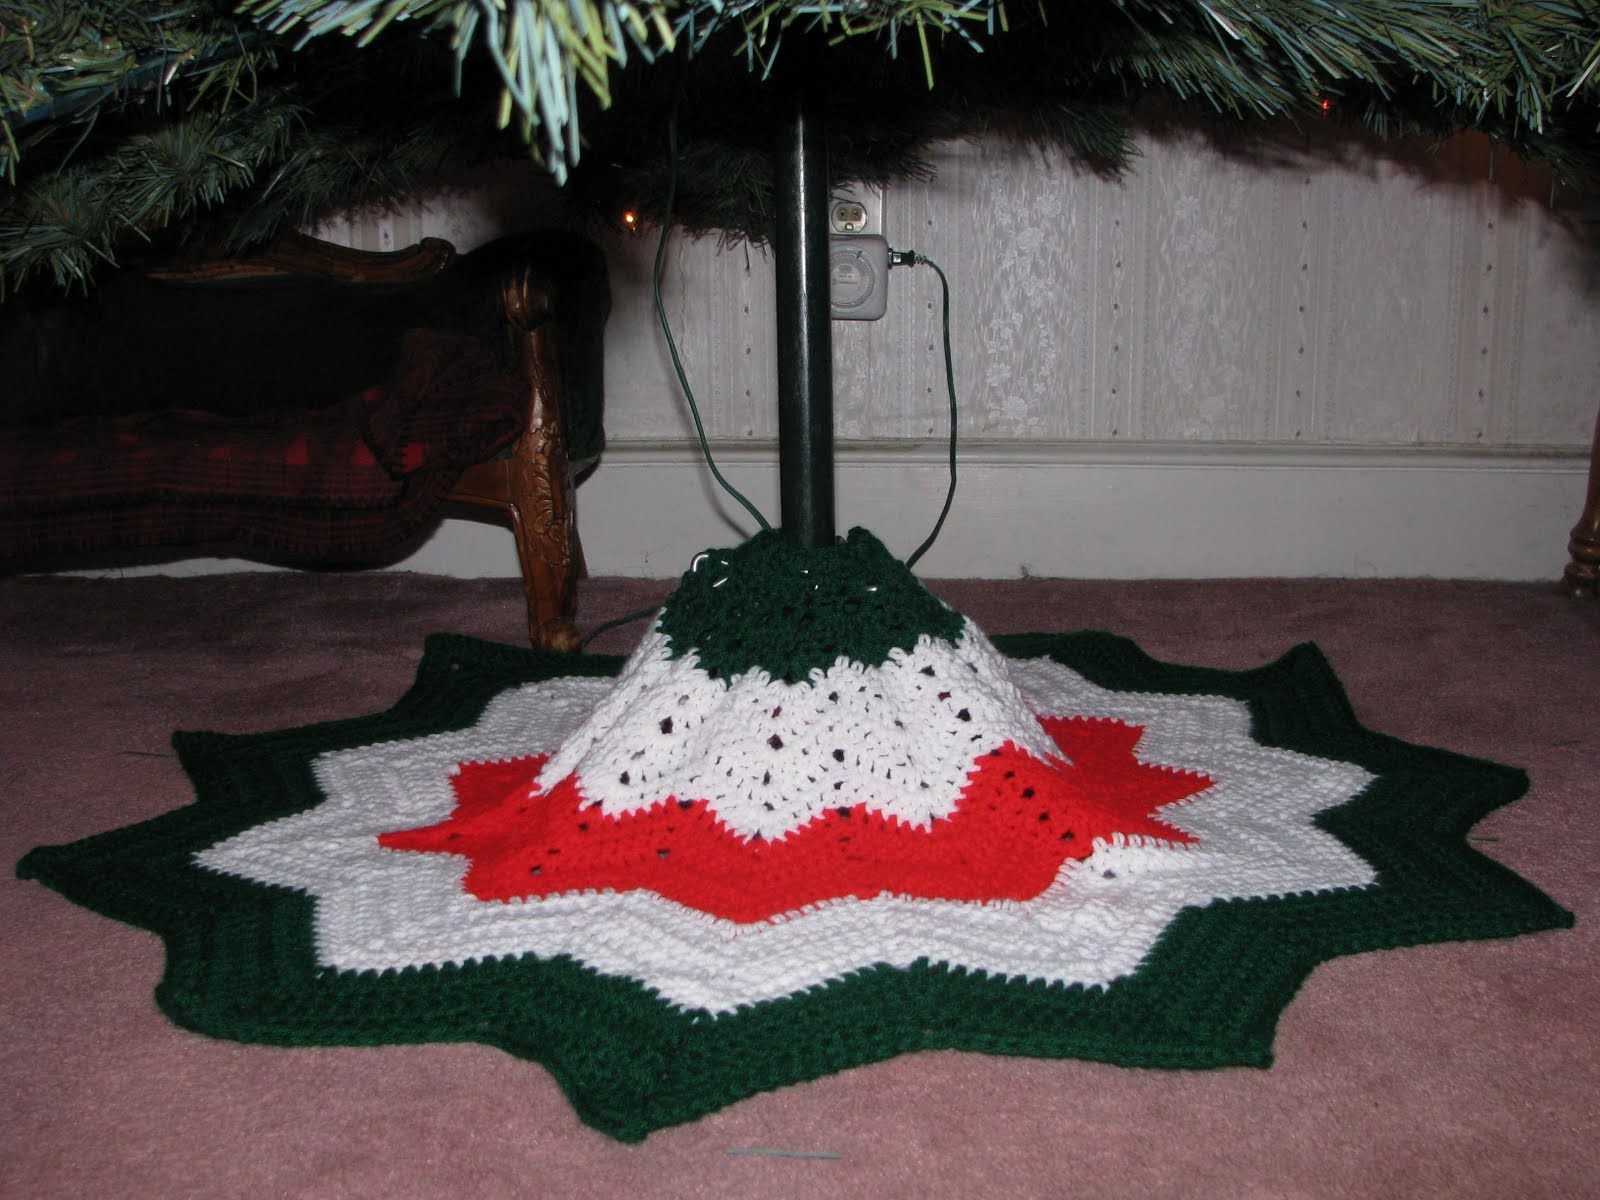 Craft Attic Resources: Tree Skirt is Finished